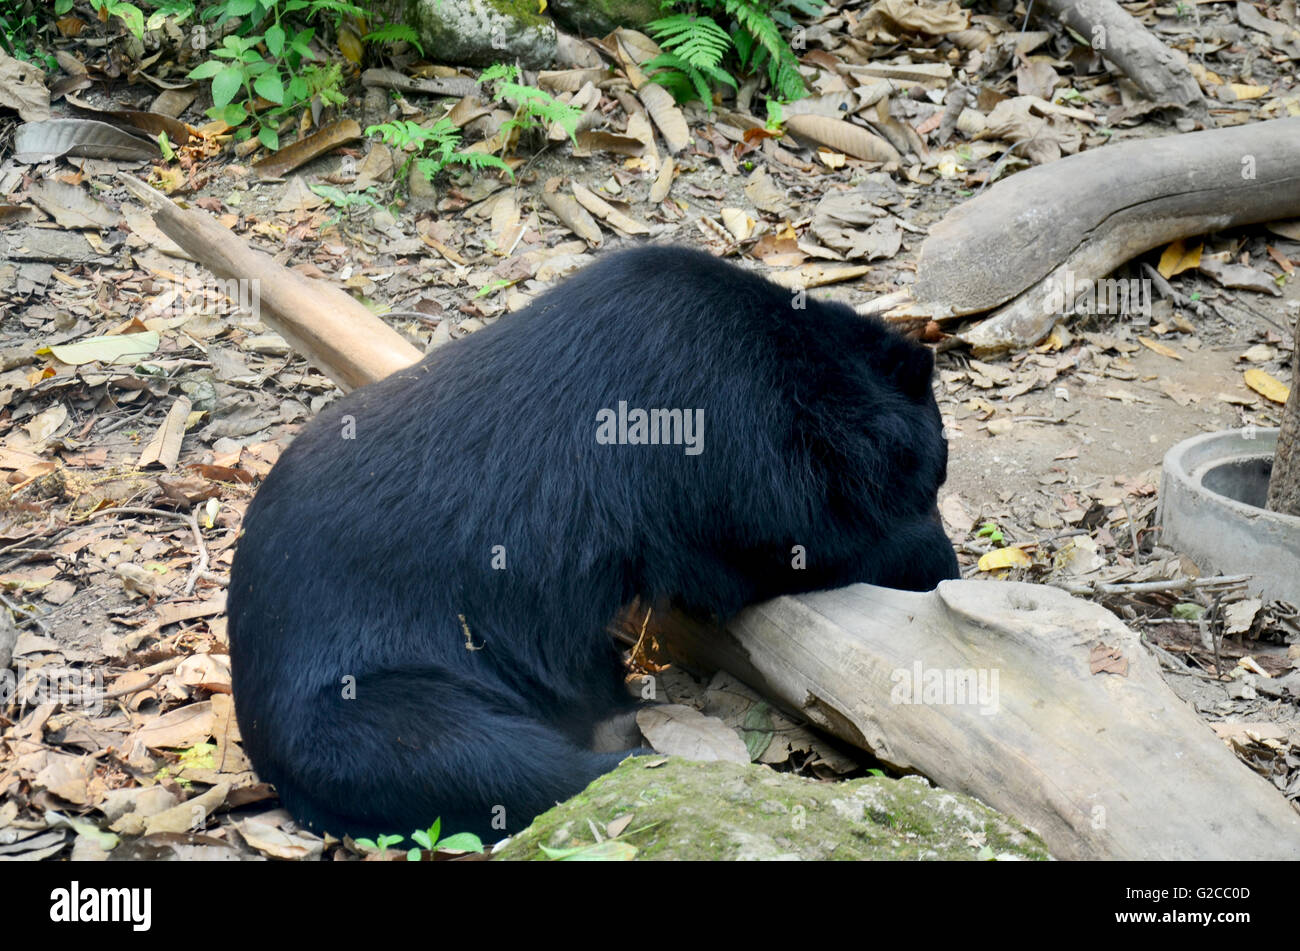 Motion of Asian black bear, asiatic black bear, Tibetan black bear,Himalayan black bear or moon bear relax at forest - Stock Image